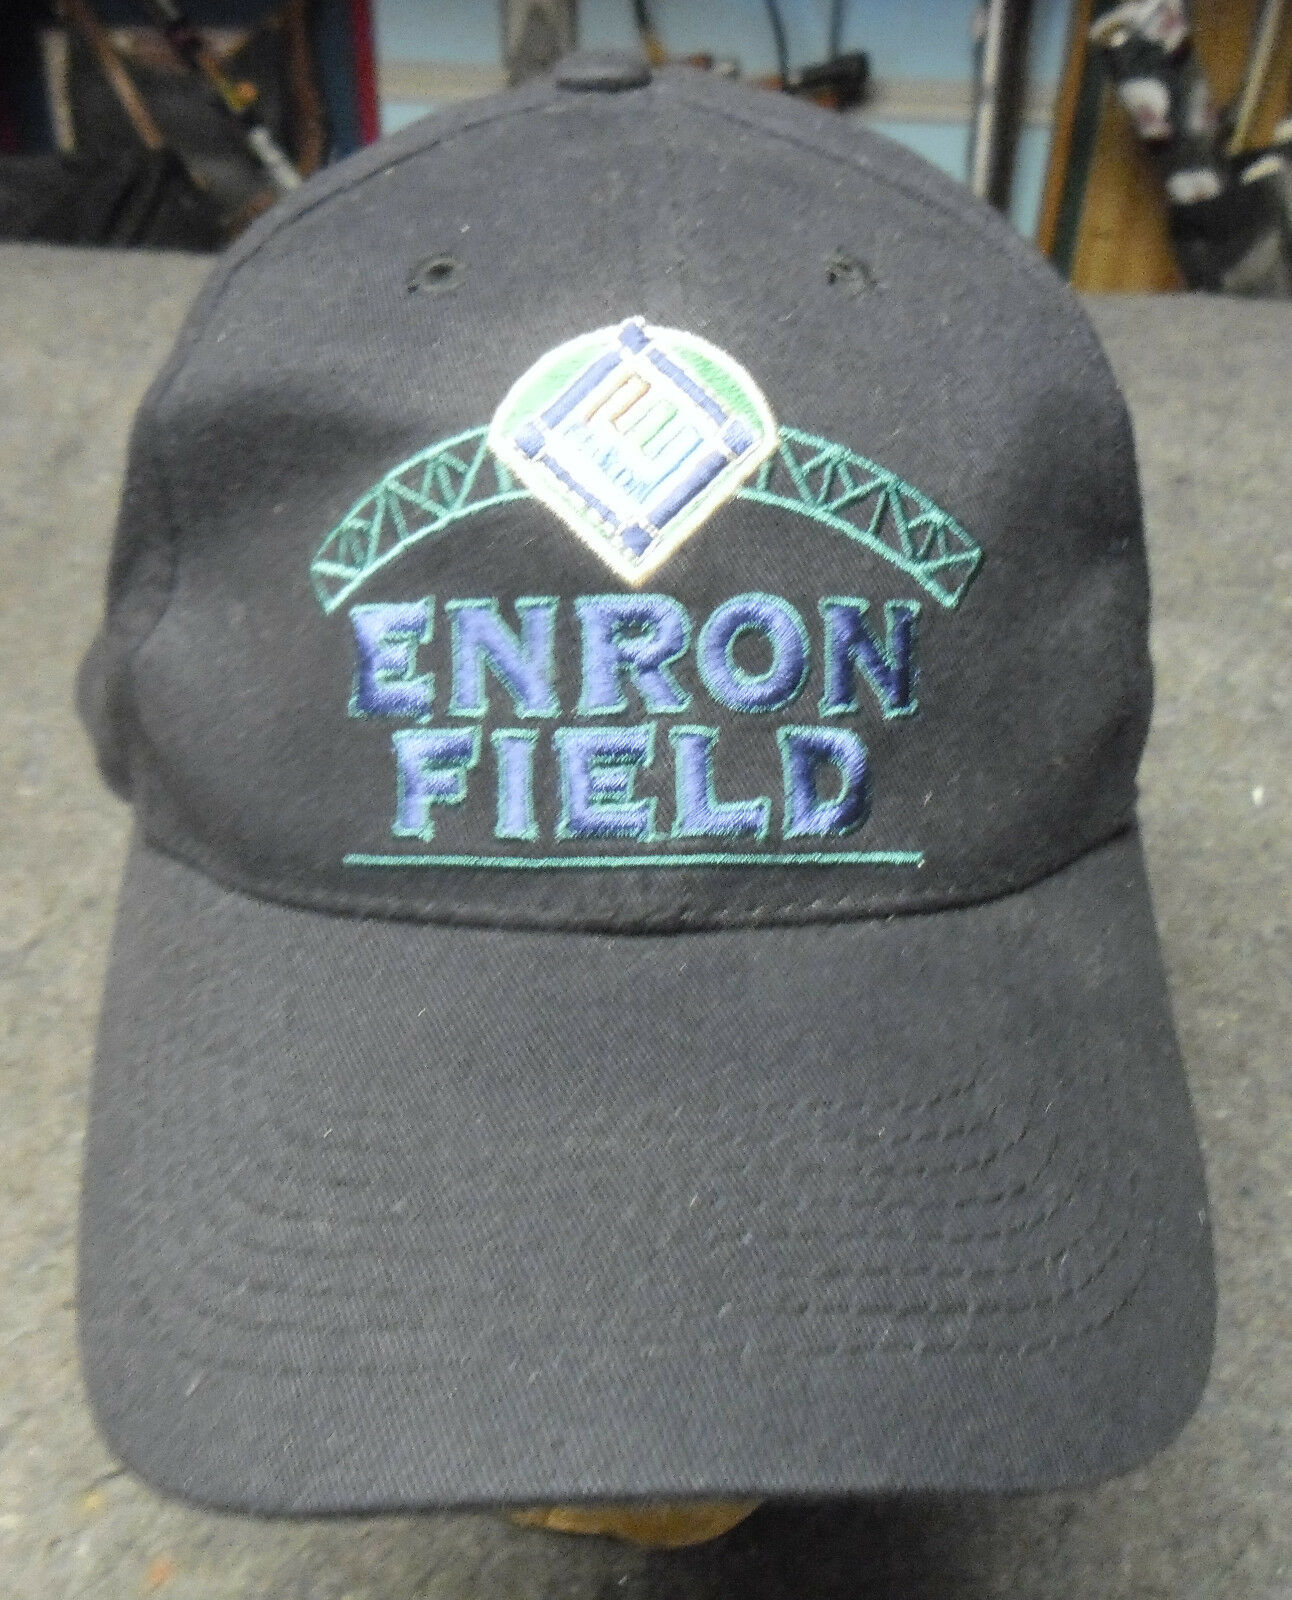 Enron Field Black Inaugural Game 2000 N.Y. Yankees Houston Astros Black Field Cap Snap back 9f13ae